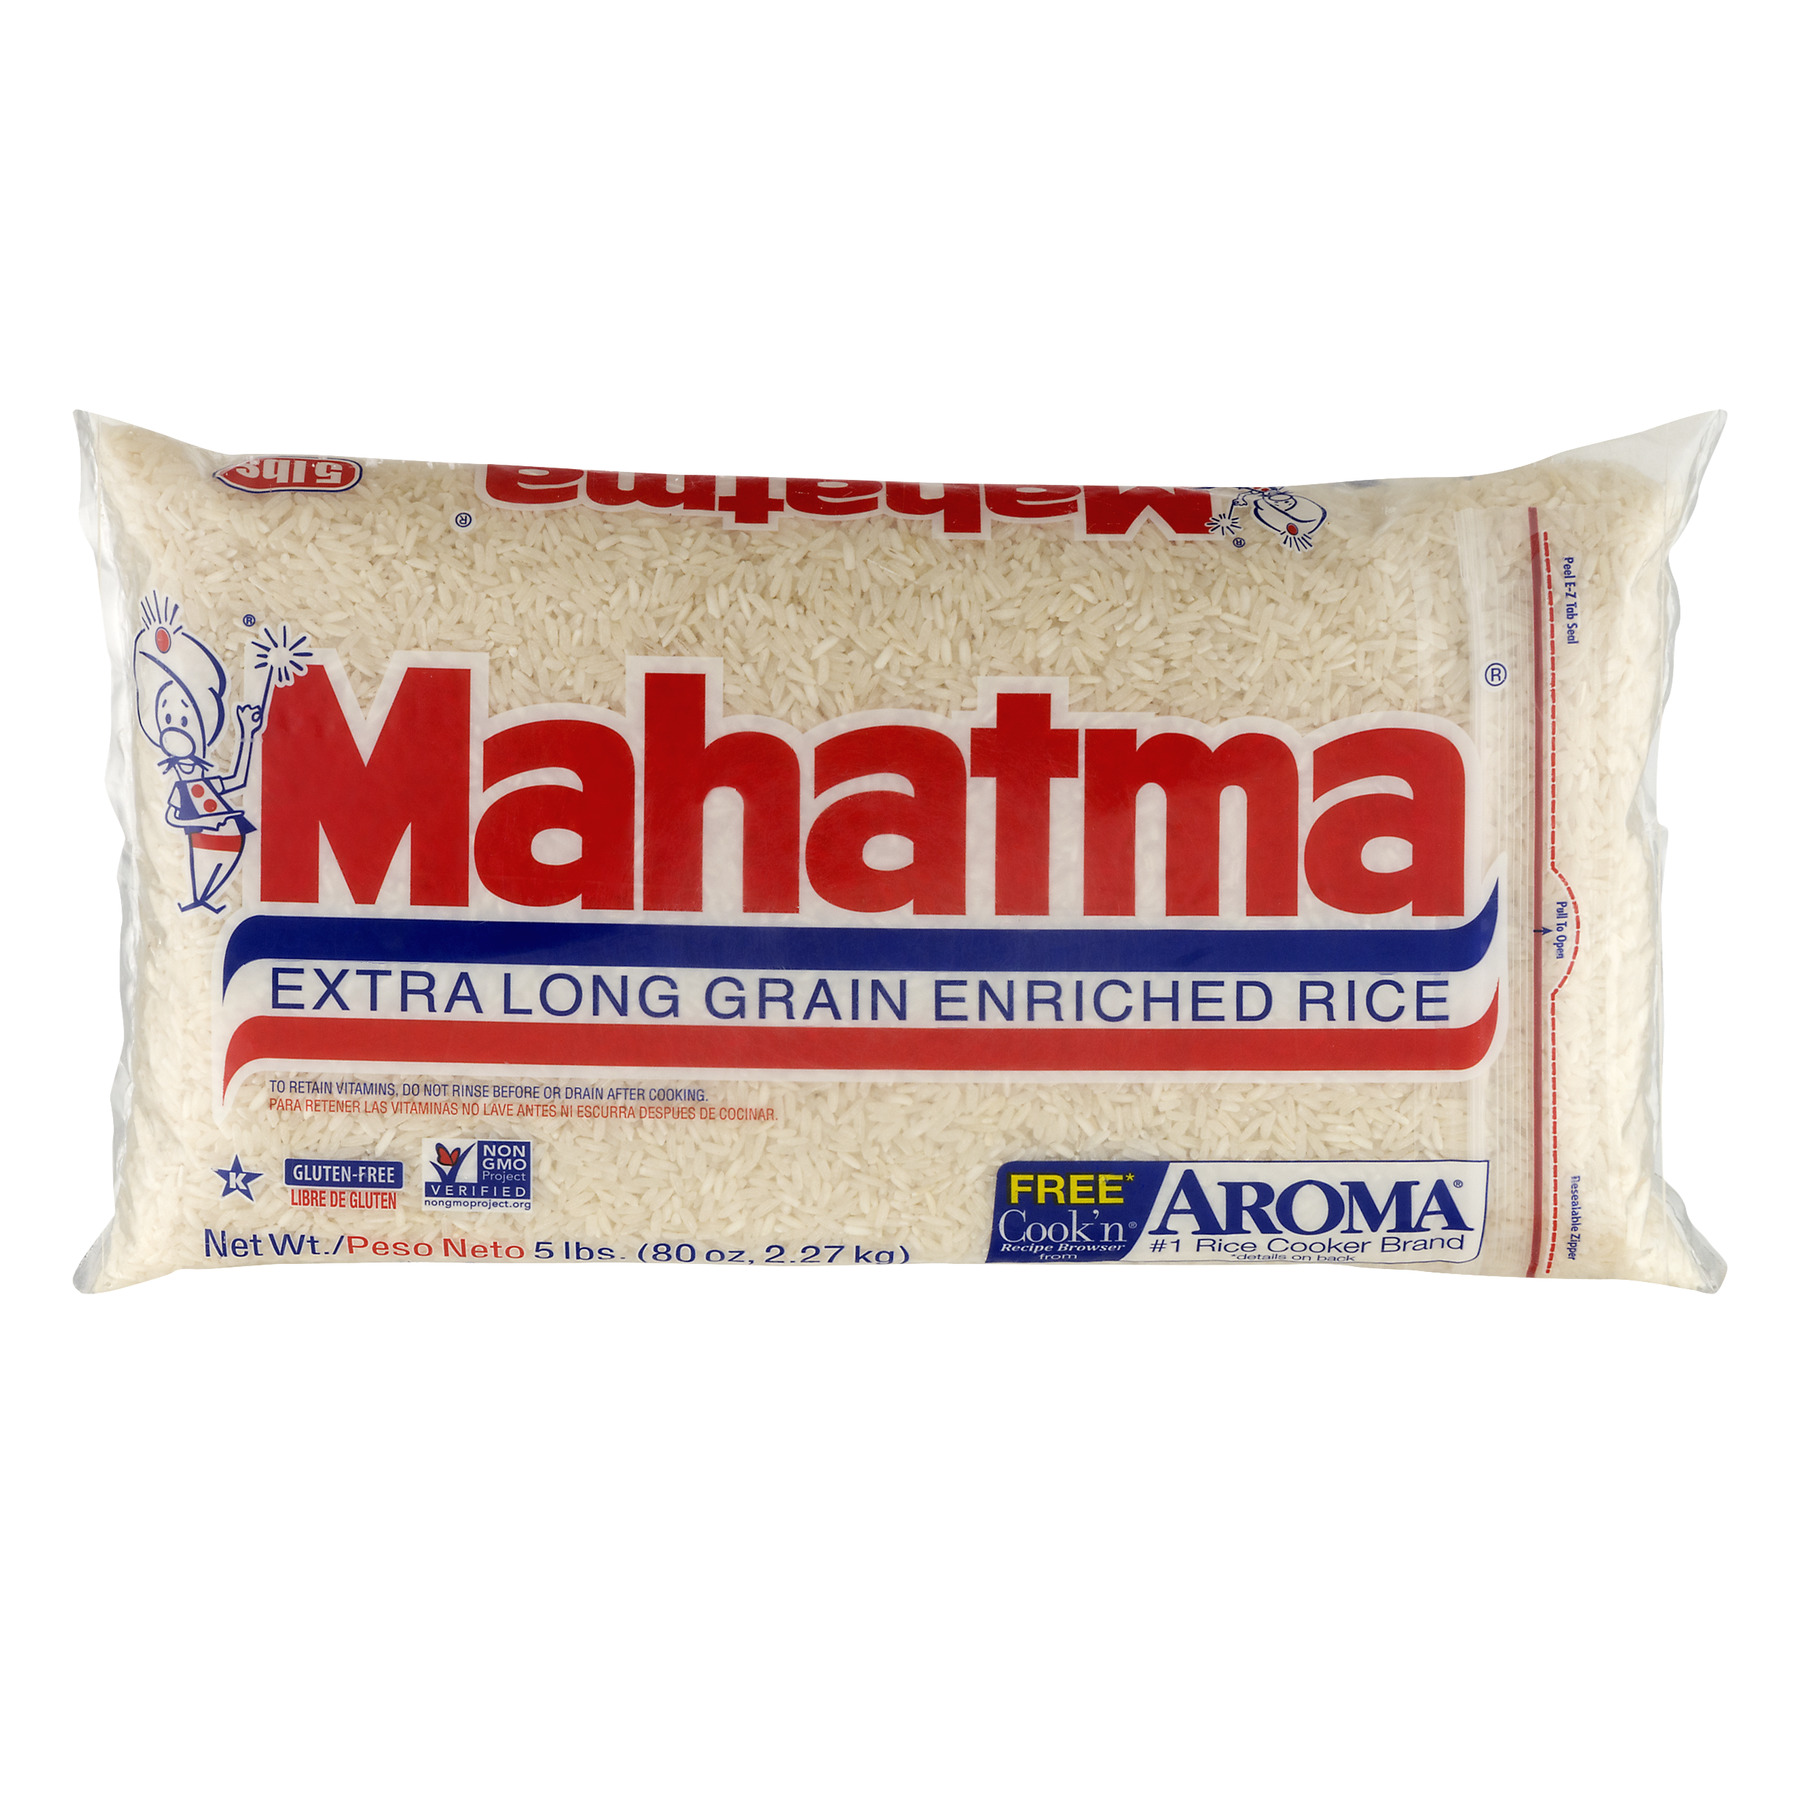 Mahatma Extra Long Grain Enriched Rice, 80.0 OZ